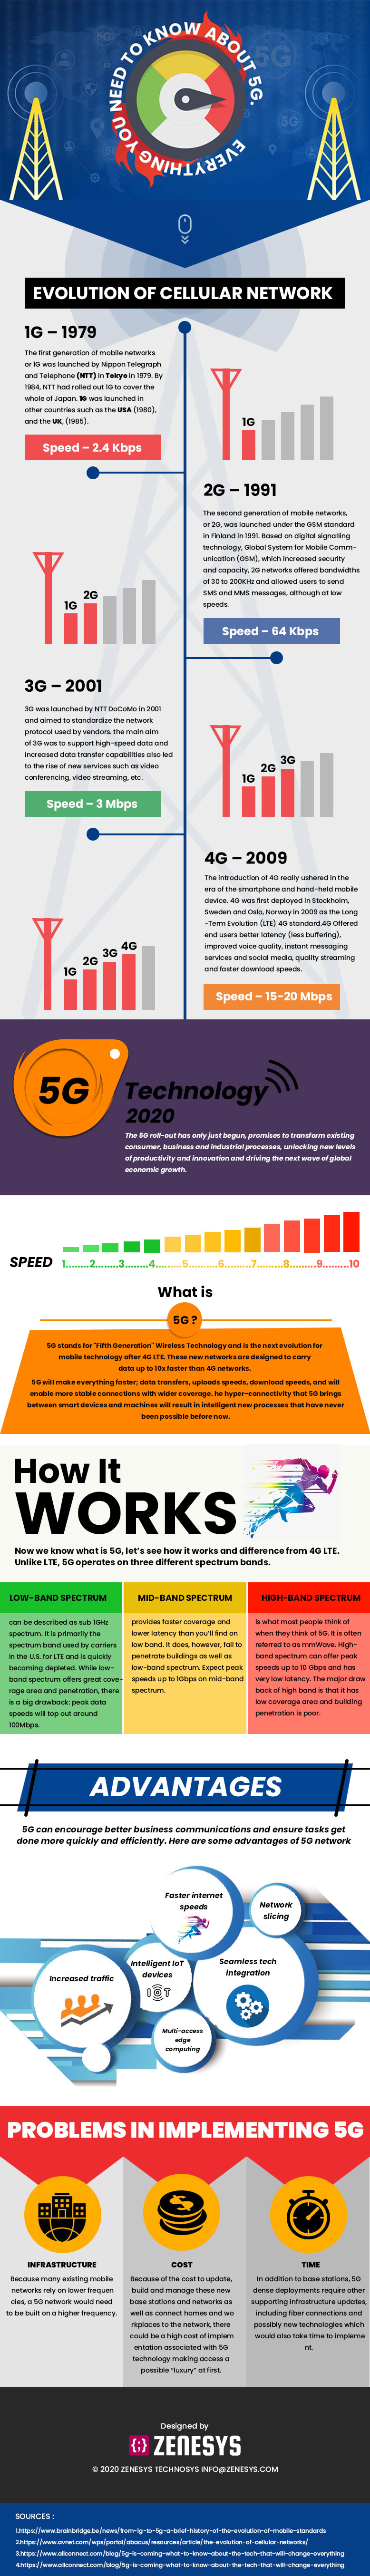 Everything you need to know about 5G -Infographic | An Infographic